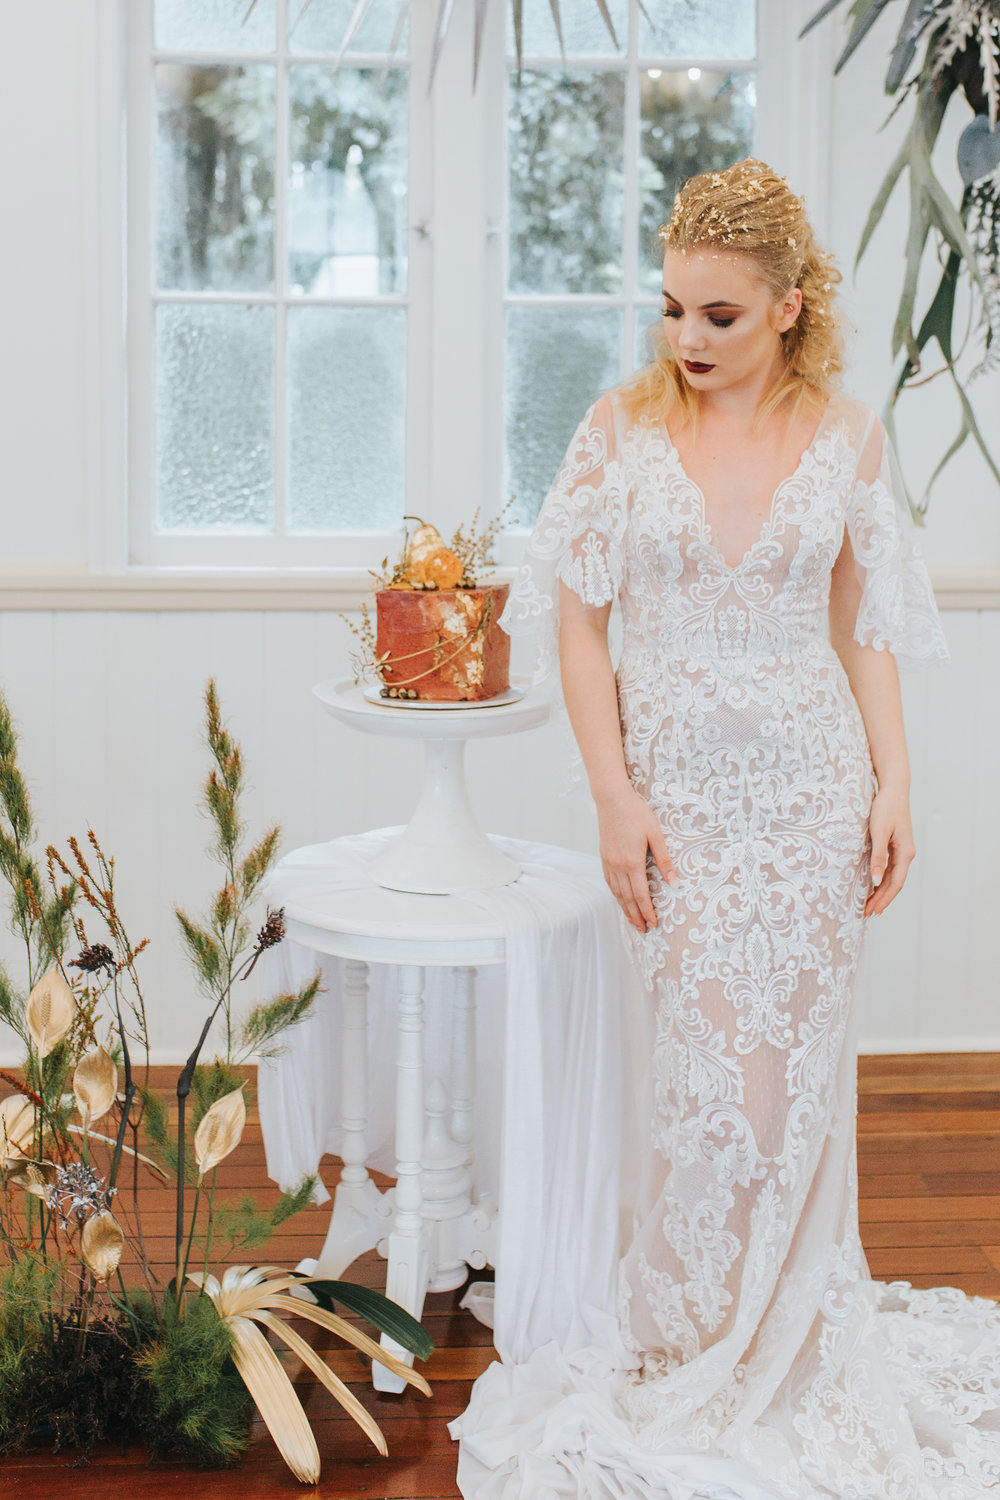 Bloodwood Botanica | Gold and silver wedding flowers and cake